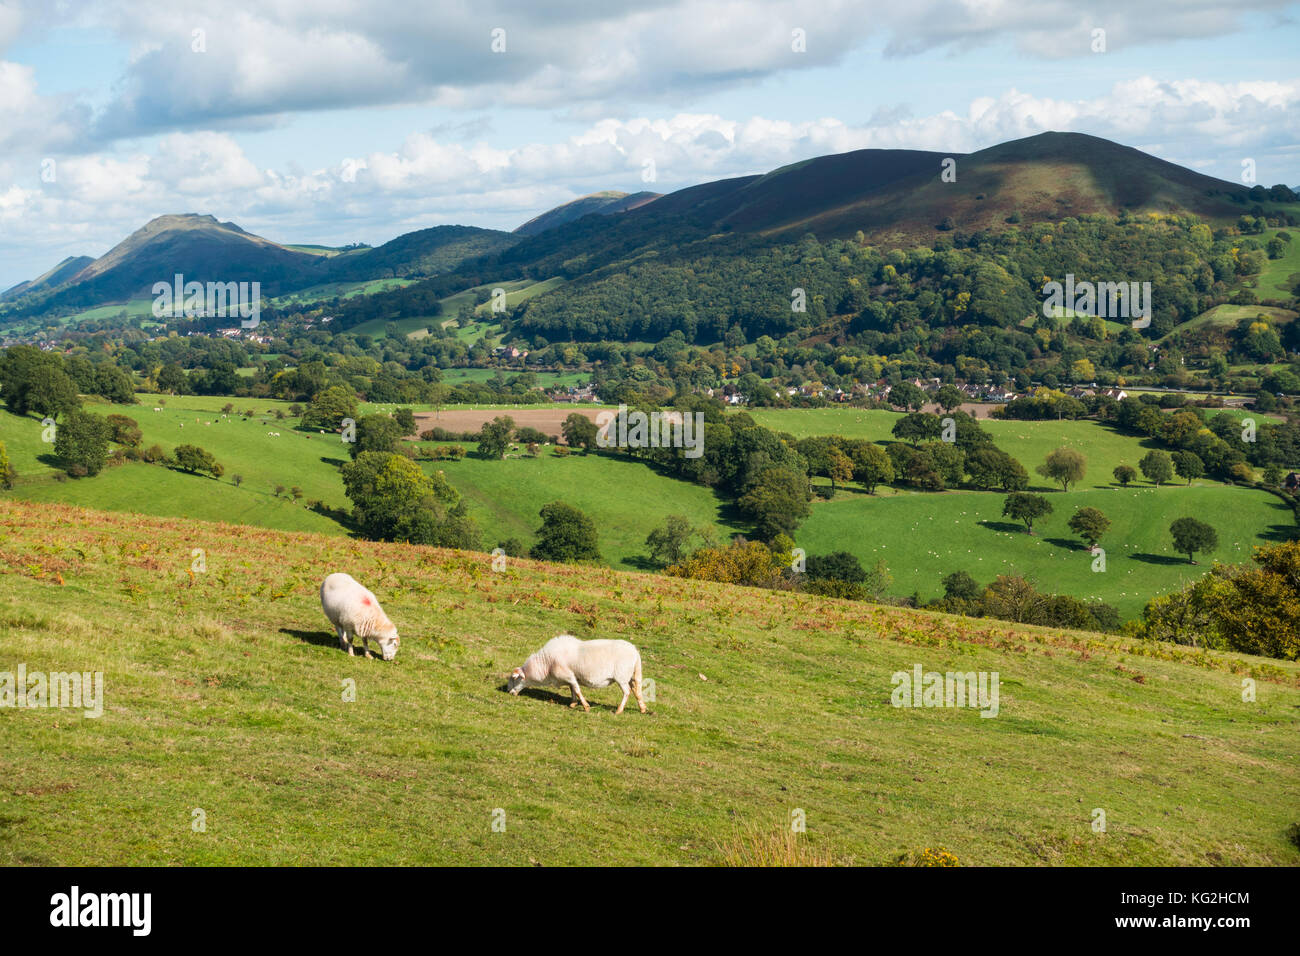 View from the Long Mynd, Shropshire, England, towards Ragleth, Helmeth and Caer Caradoc Hills - Stock Image